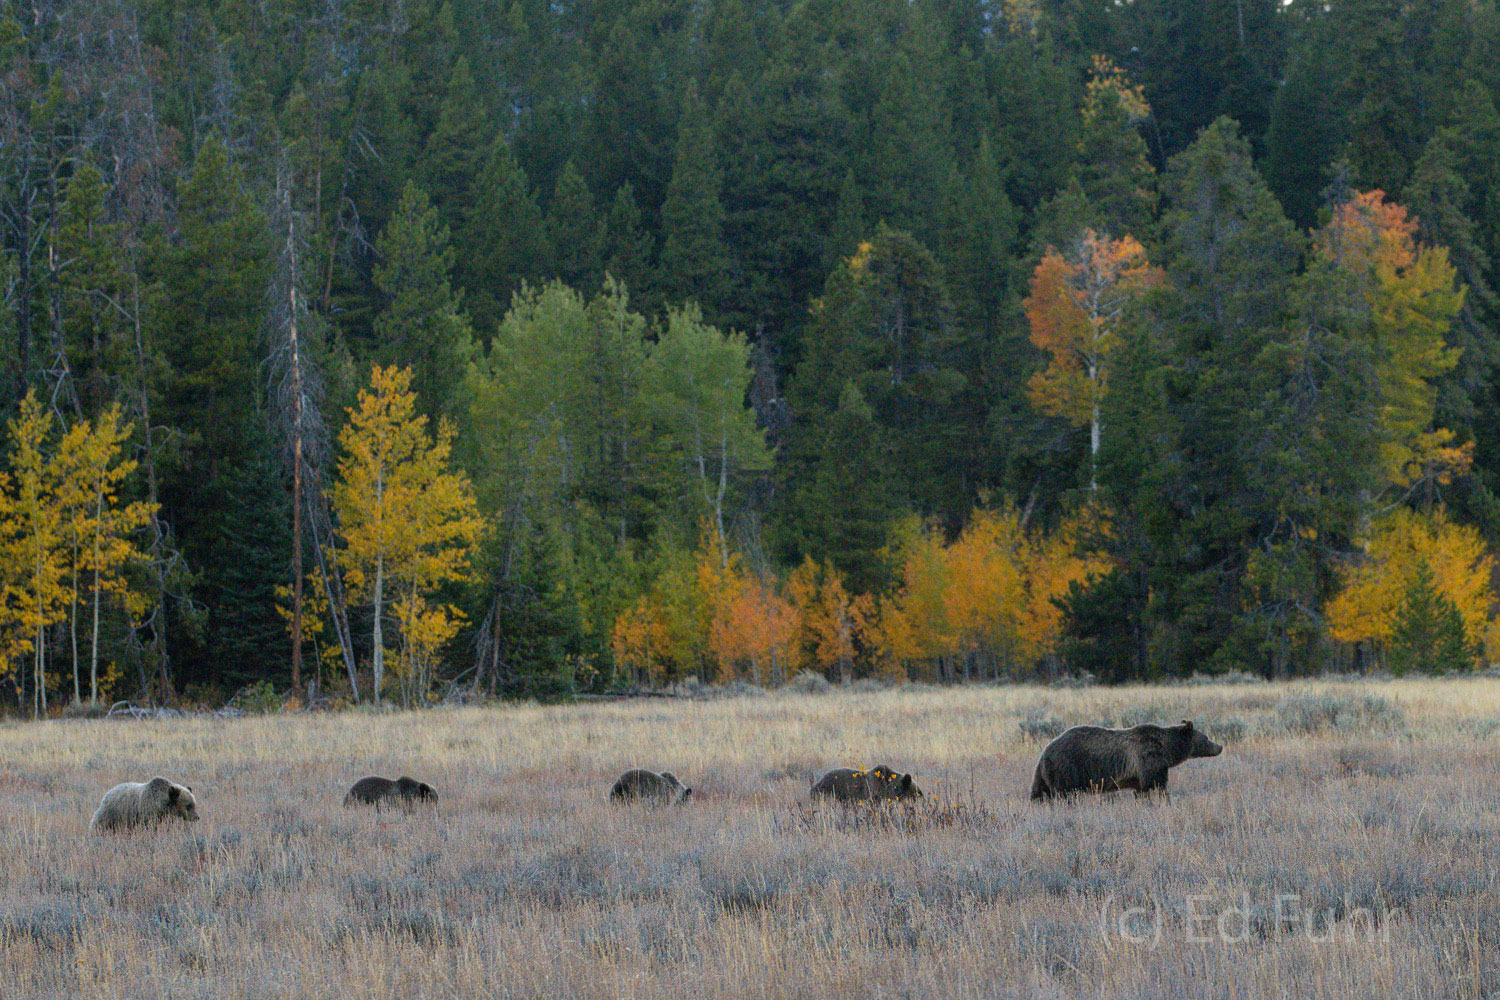 Against an autumn backdrop, grizzly 399 leads her parade, with four rapidly growing cubs dutifully in line.